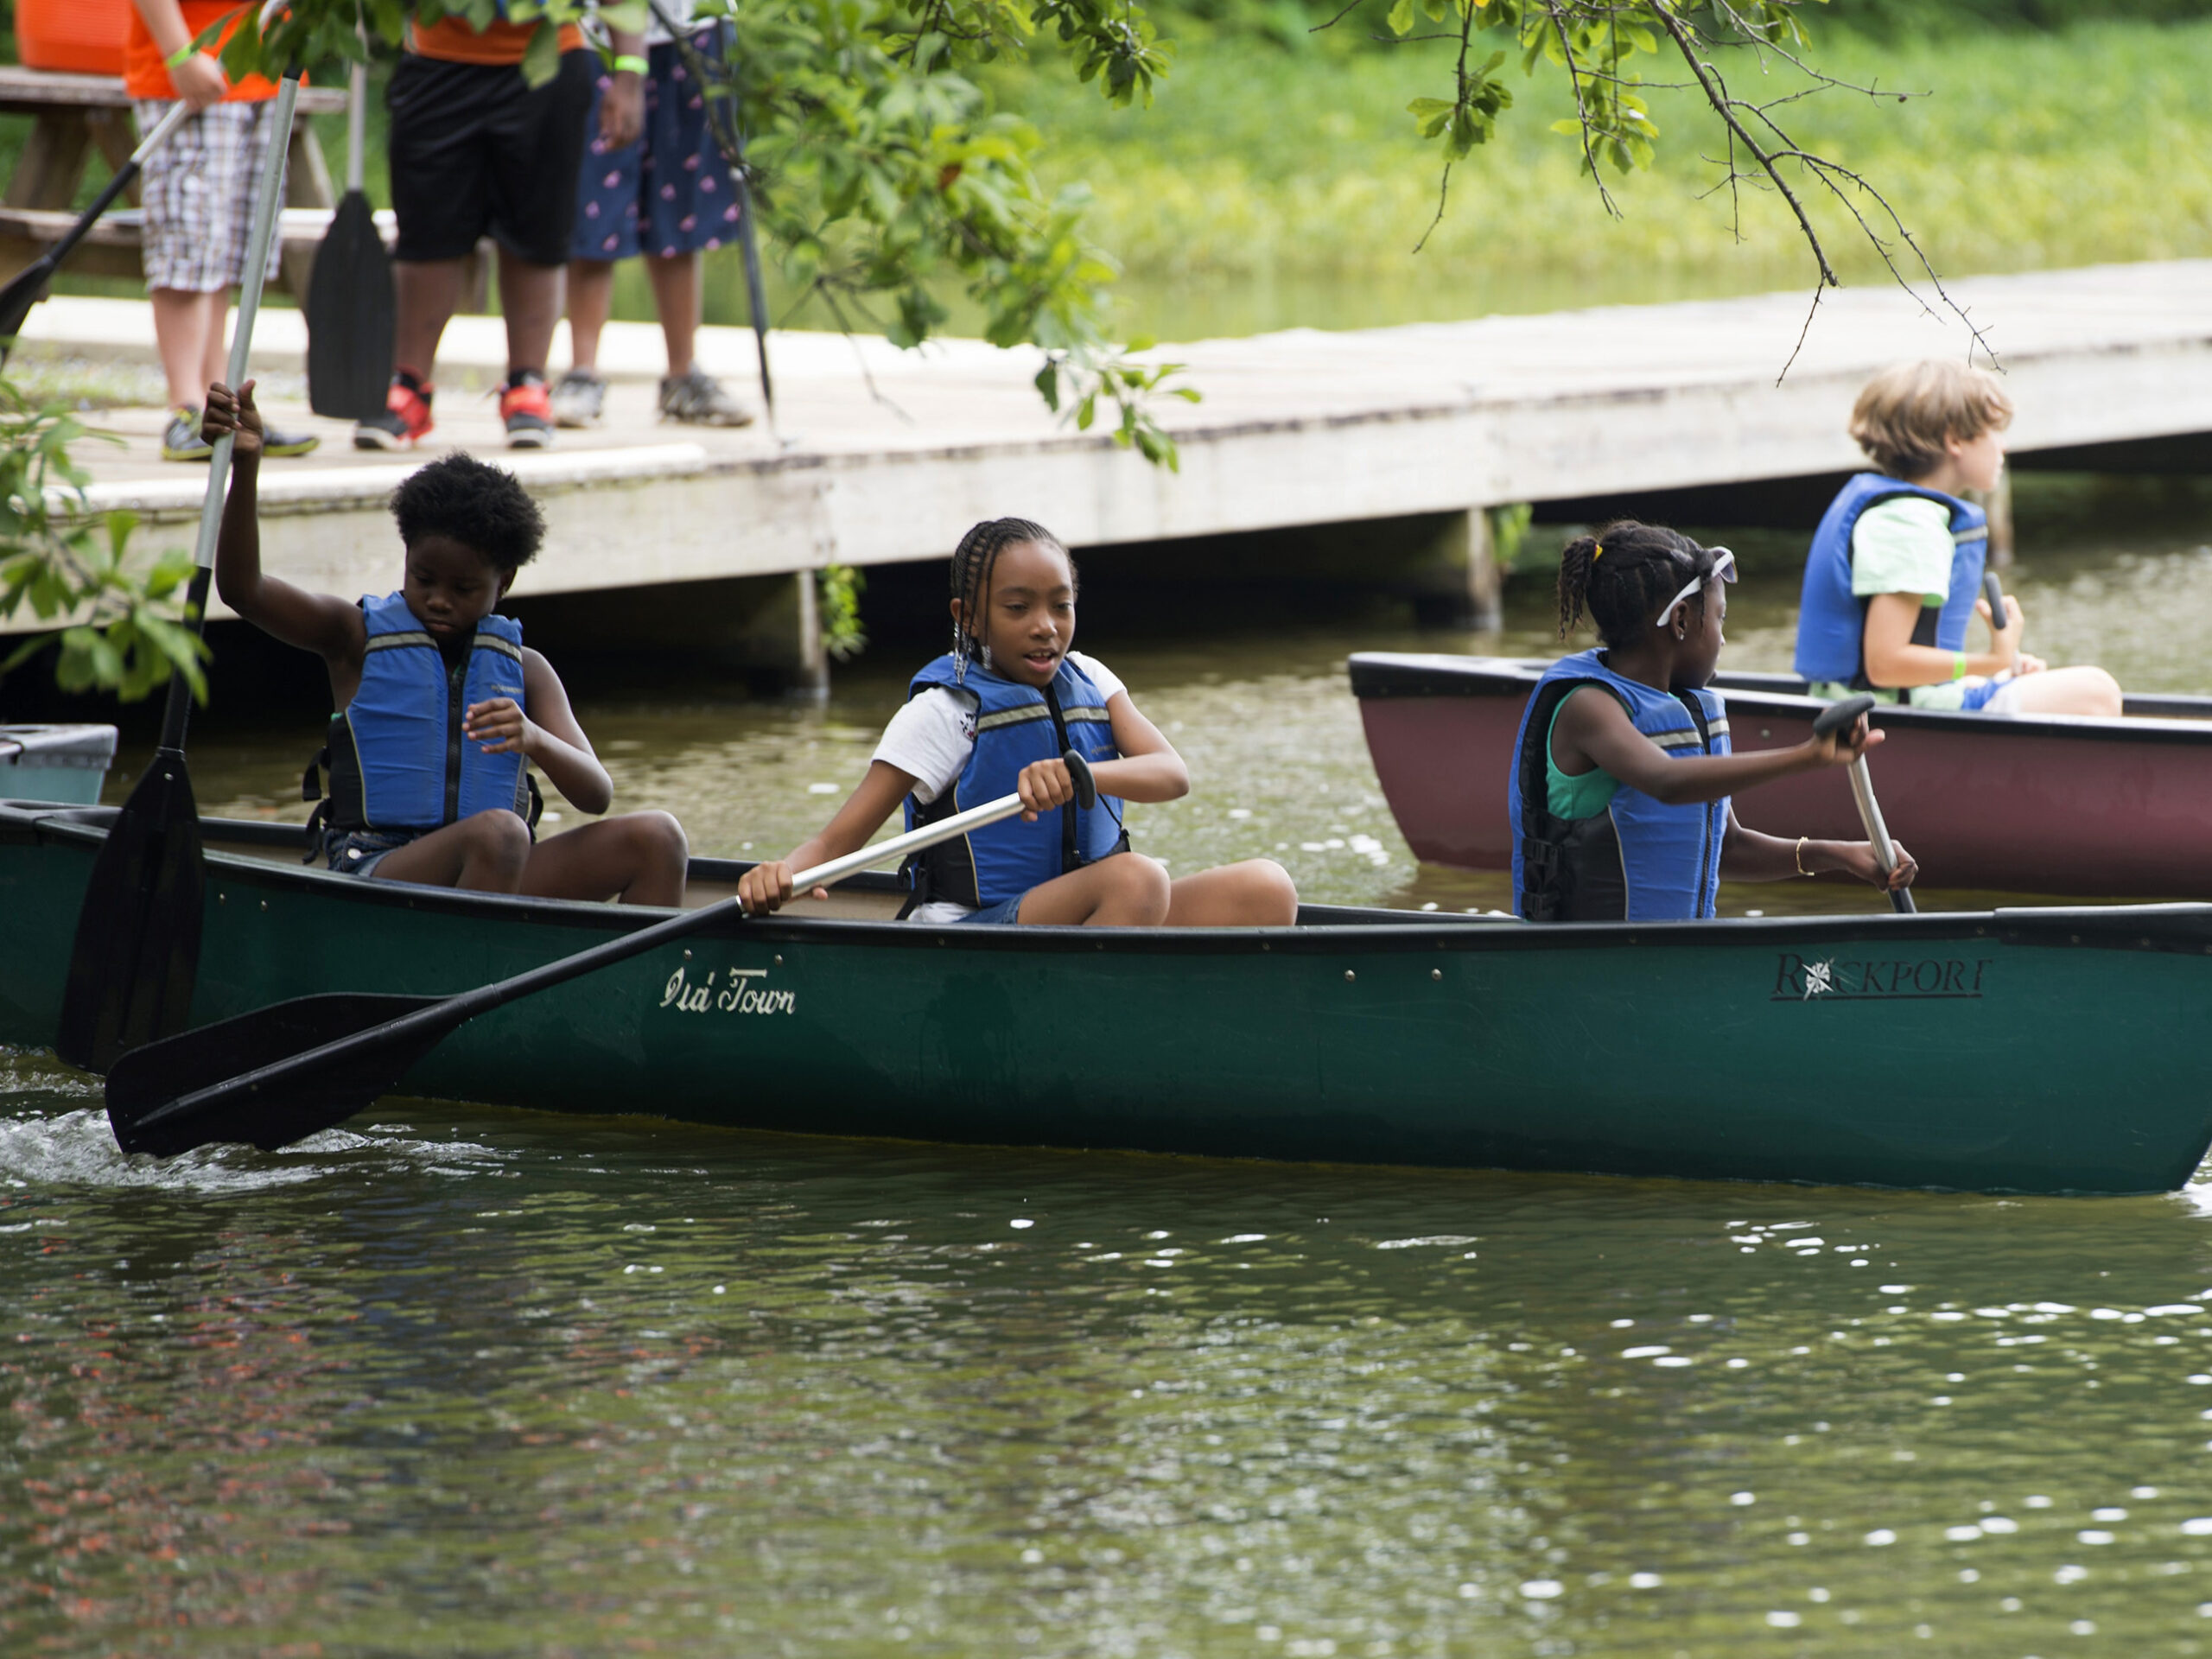 kids in canoes paddling away from the dock